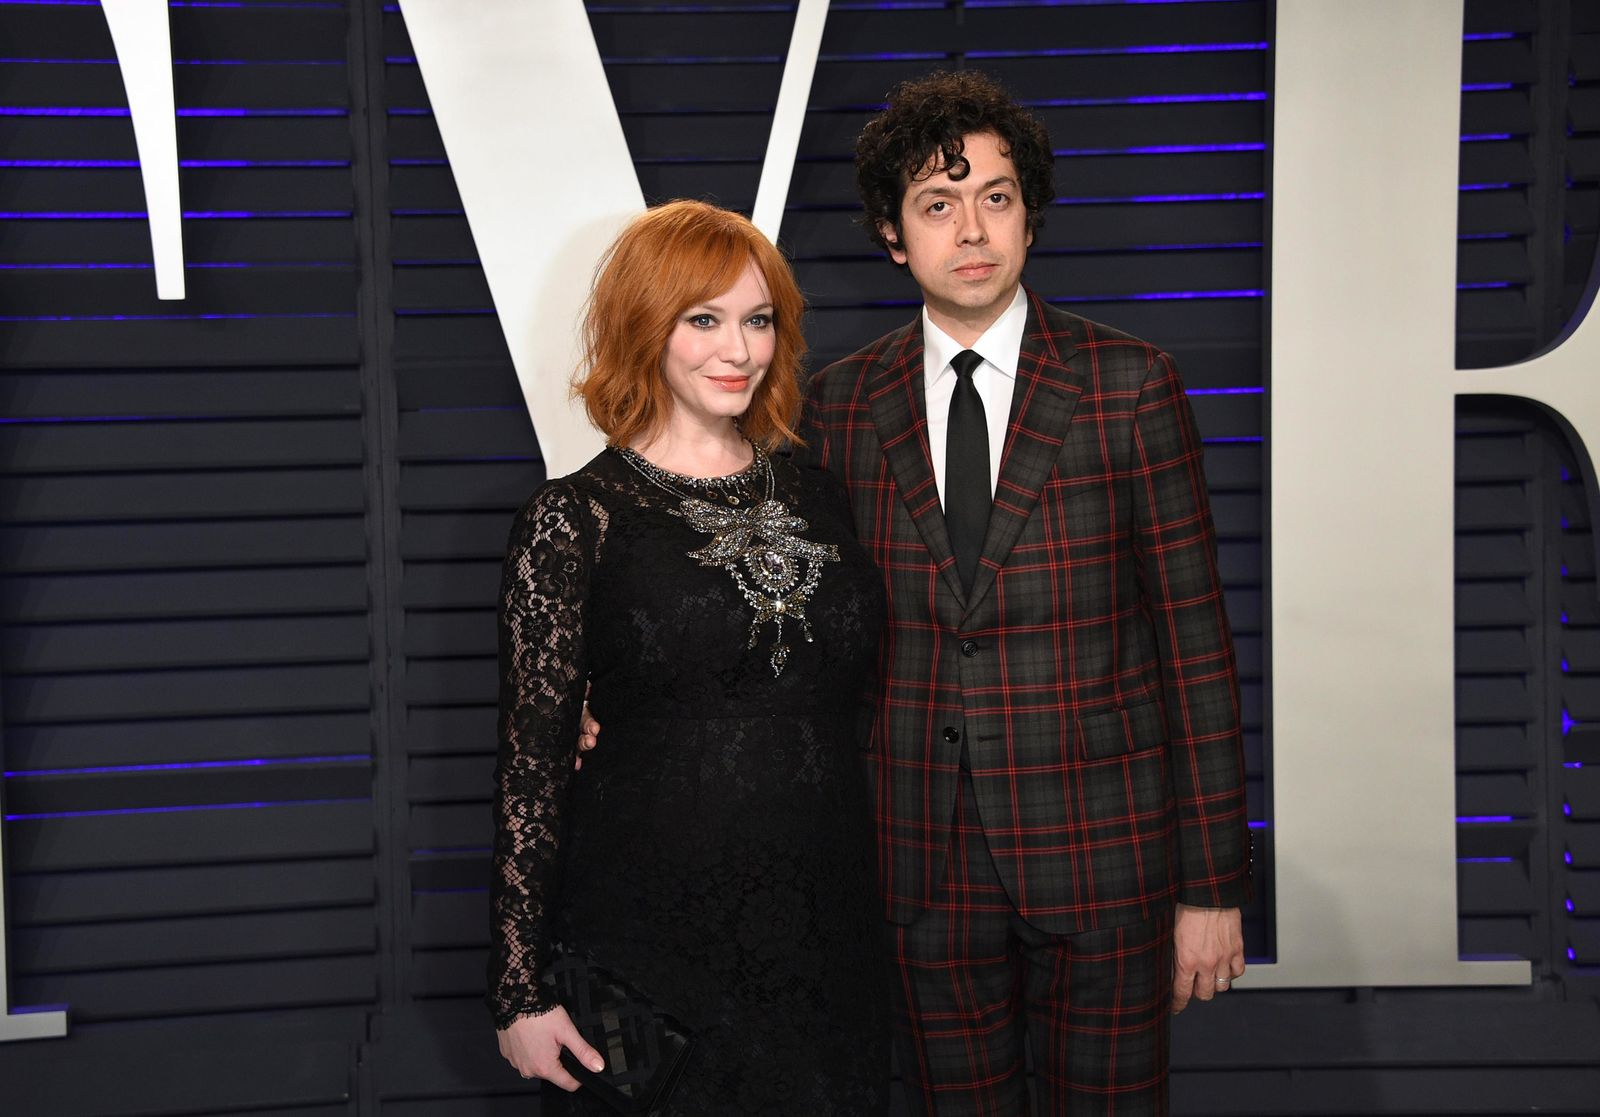 FILE - In this Feb. 24, 2019 file photo, Christina Hendricks, left, and Geoffrey Arend arrive at the Vanity Fair Oscar Party in Beverly Hills, Calif. Hendricks filed for divorce Friday, Dec. 13,  from her husband of 10 years, actor Geoffrey Arend. (Photo by Evan Agostini/Invision/AP, File)